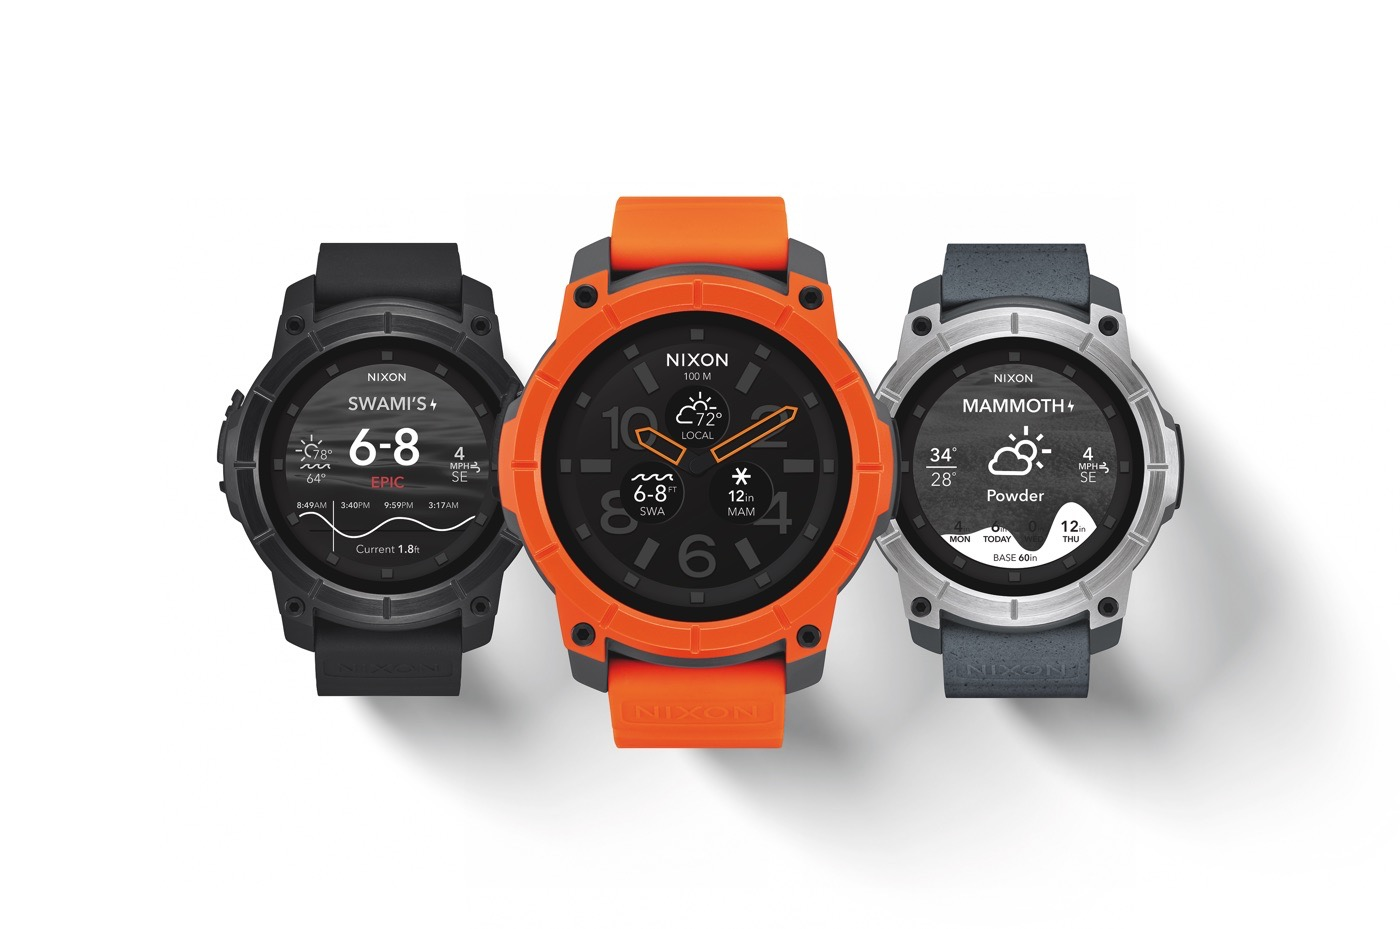 Image result for Nixon android smart watches Mission